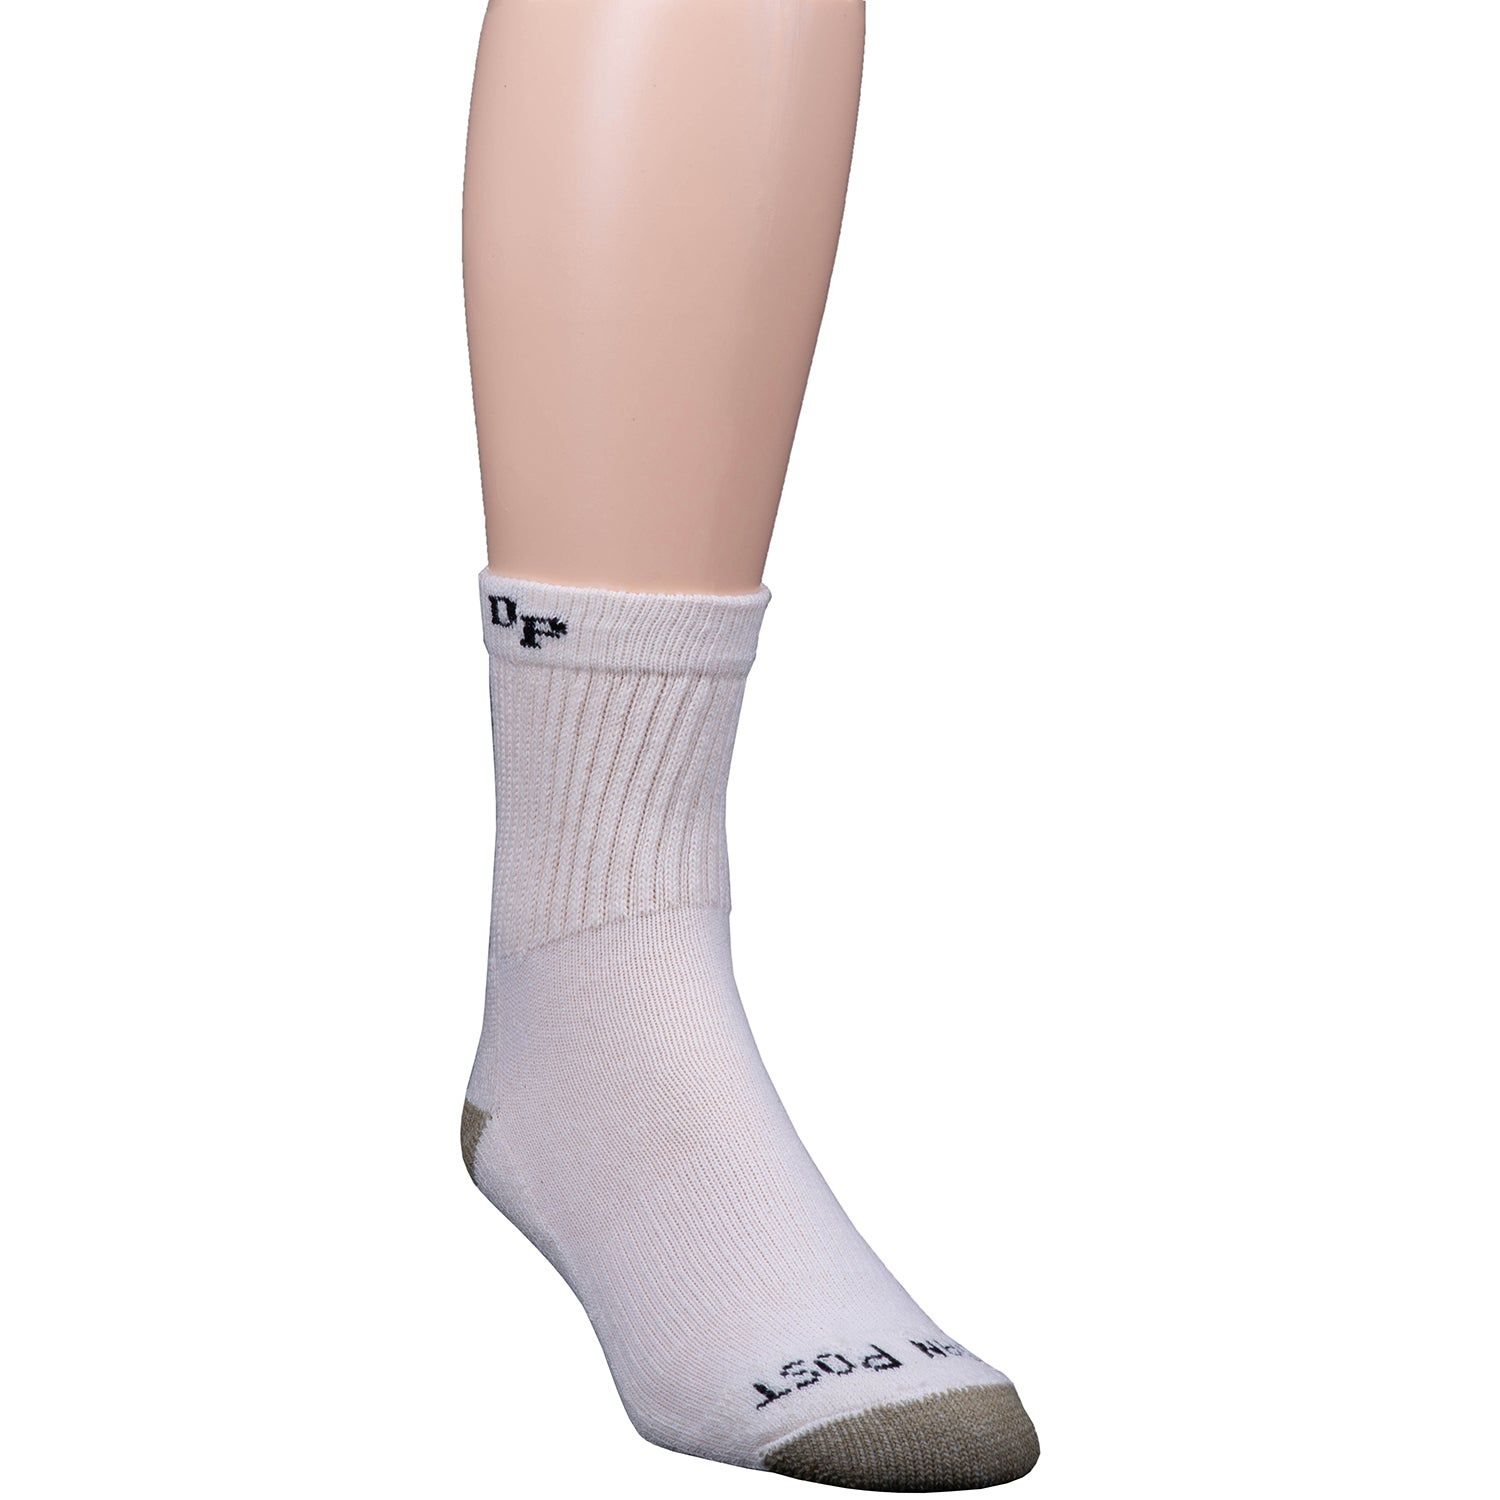 LIGHT WEIGHT HALF CREW SOCKS 5114652426282